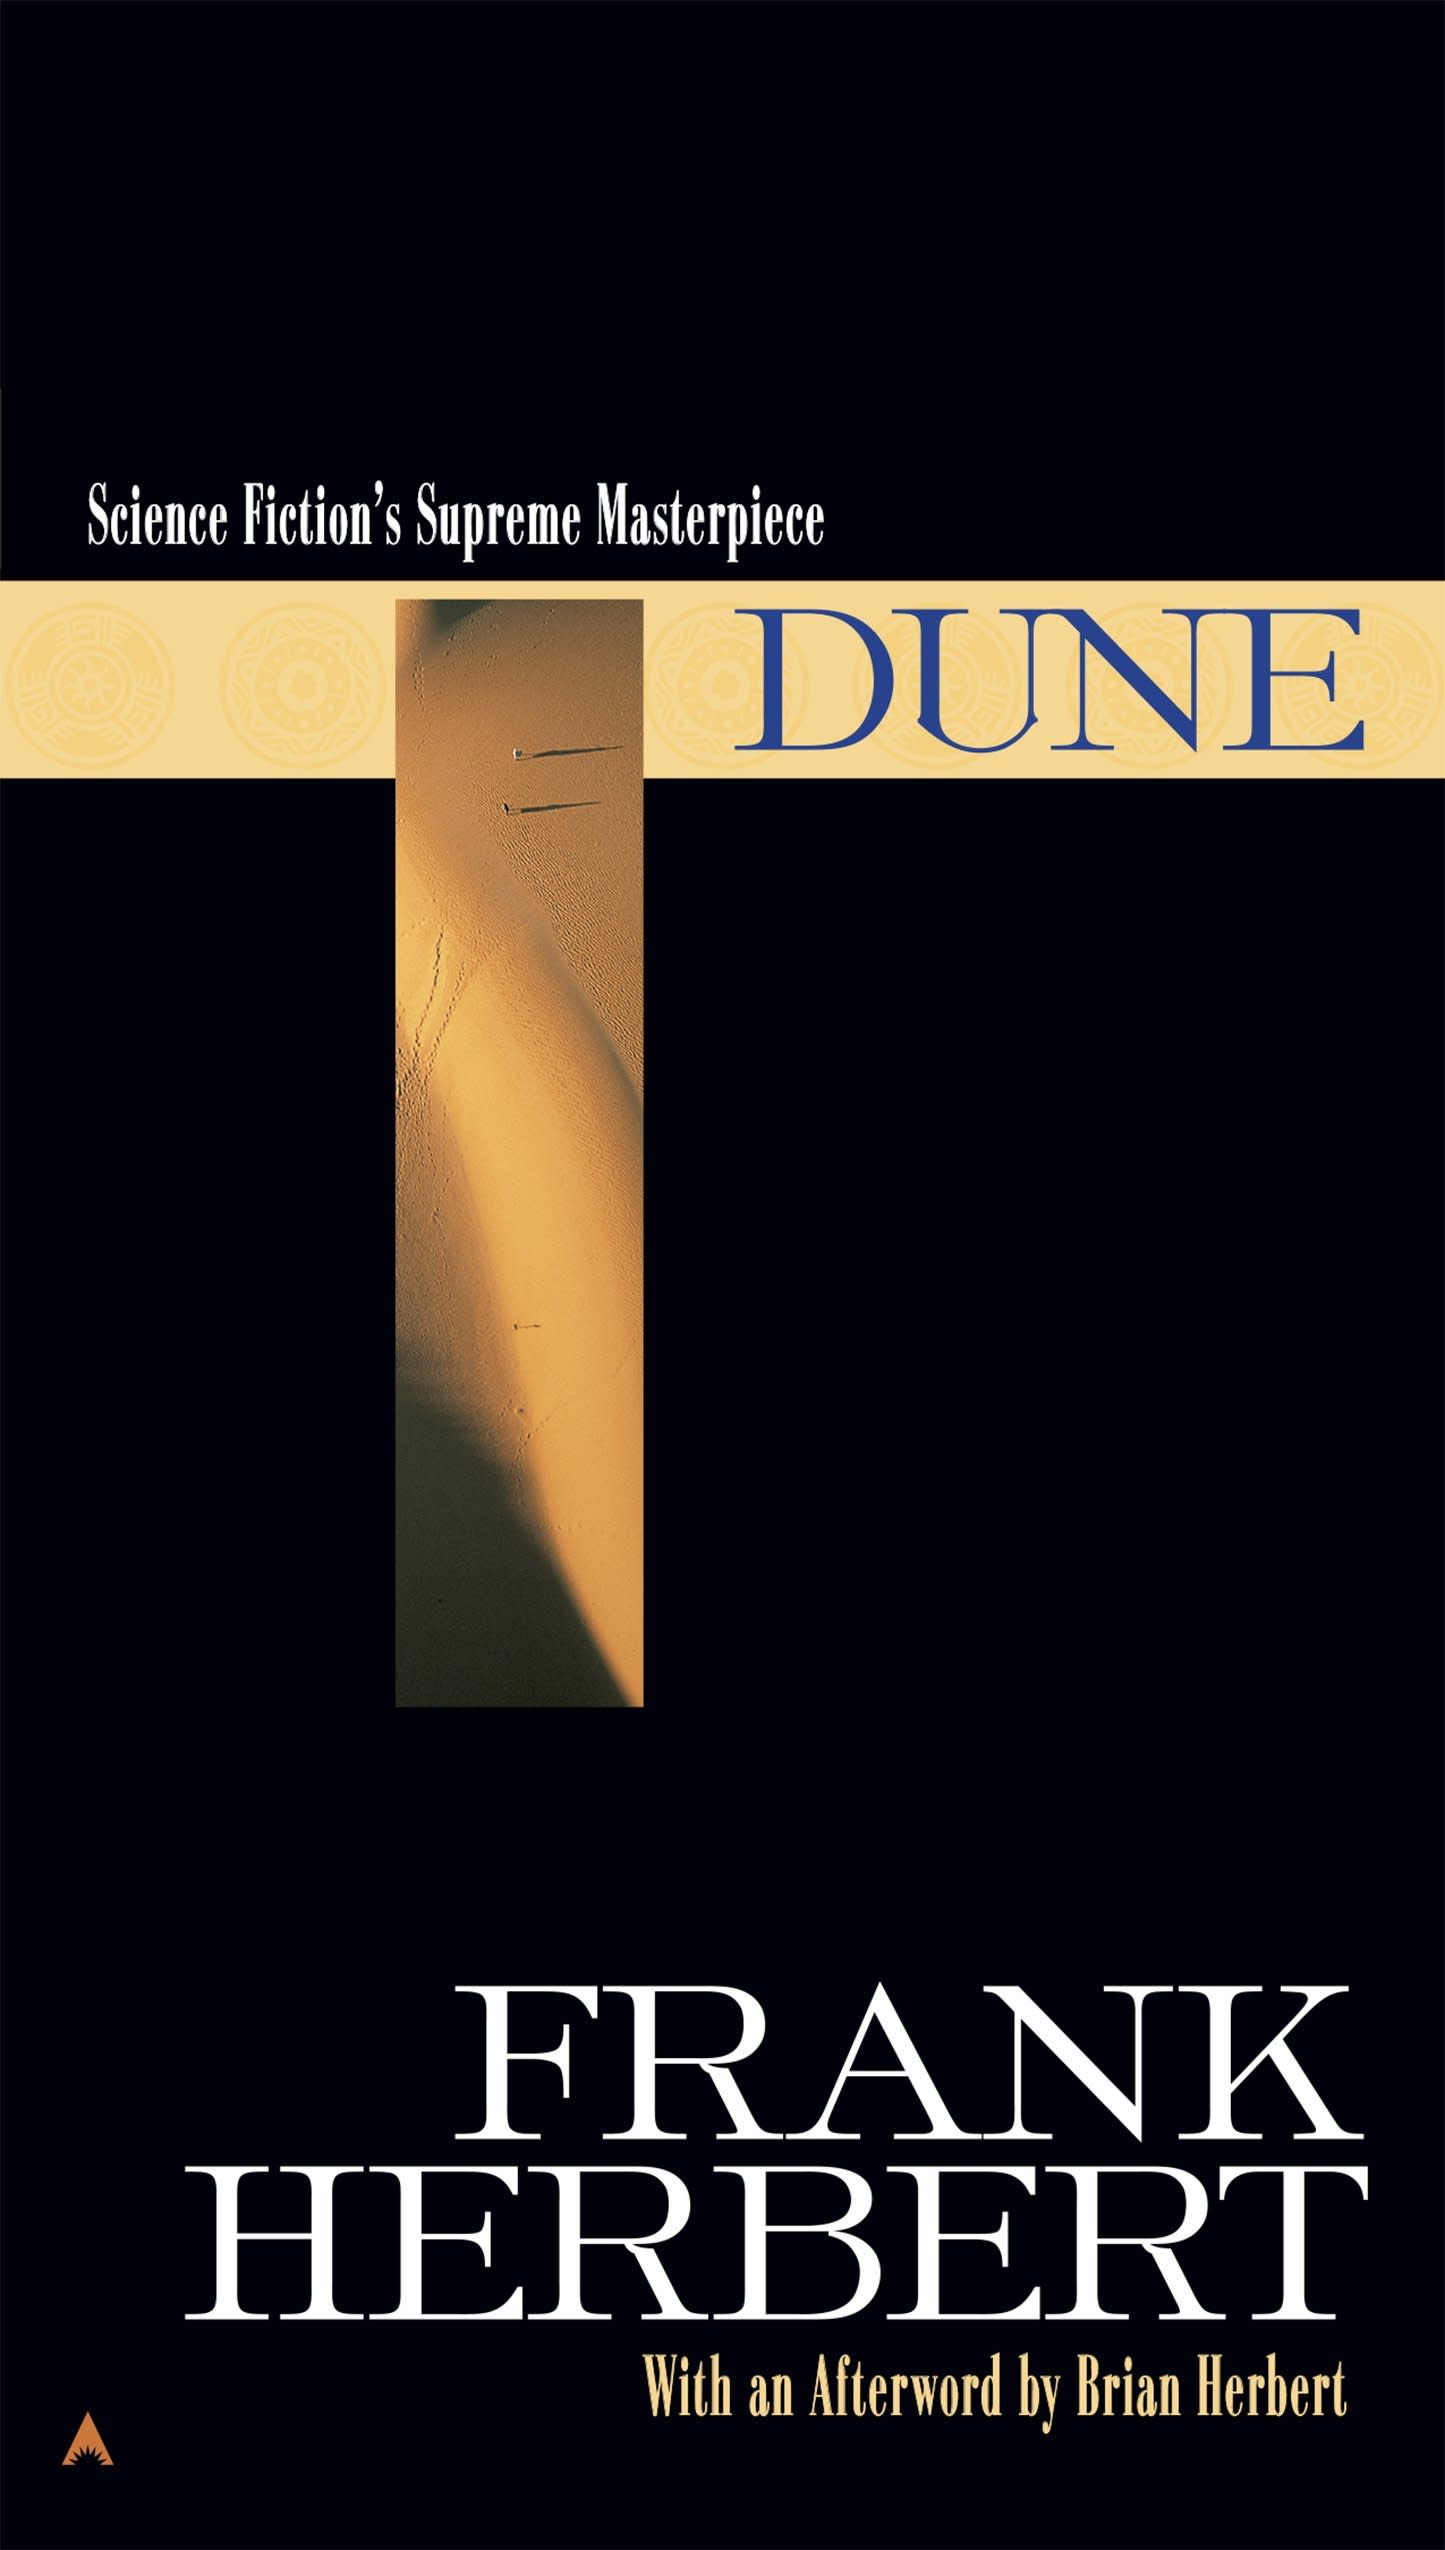 One time use: Dune book cover